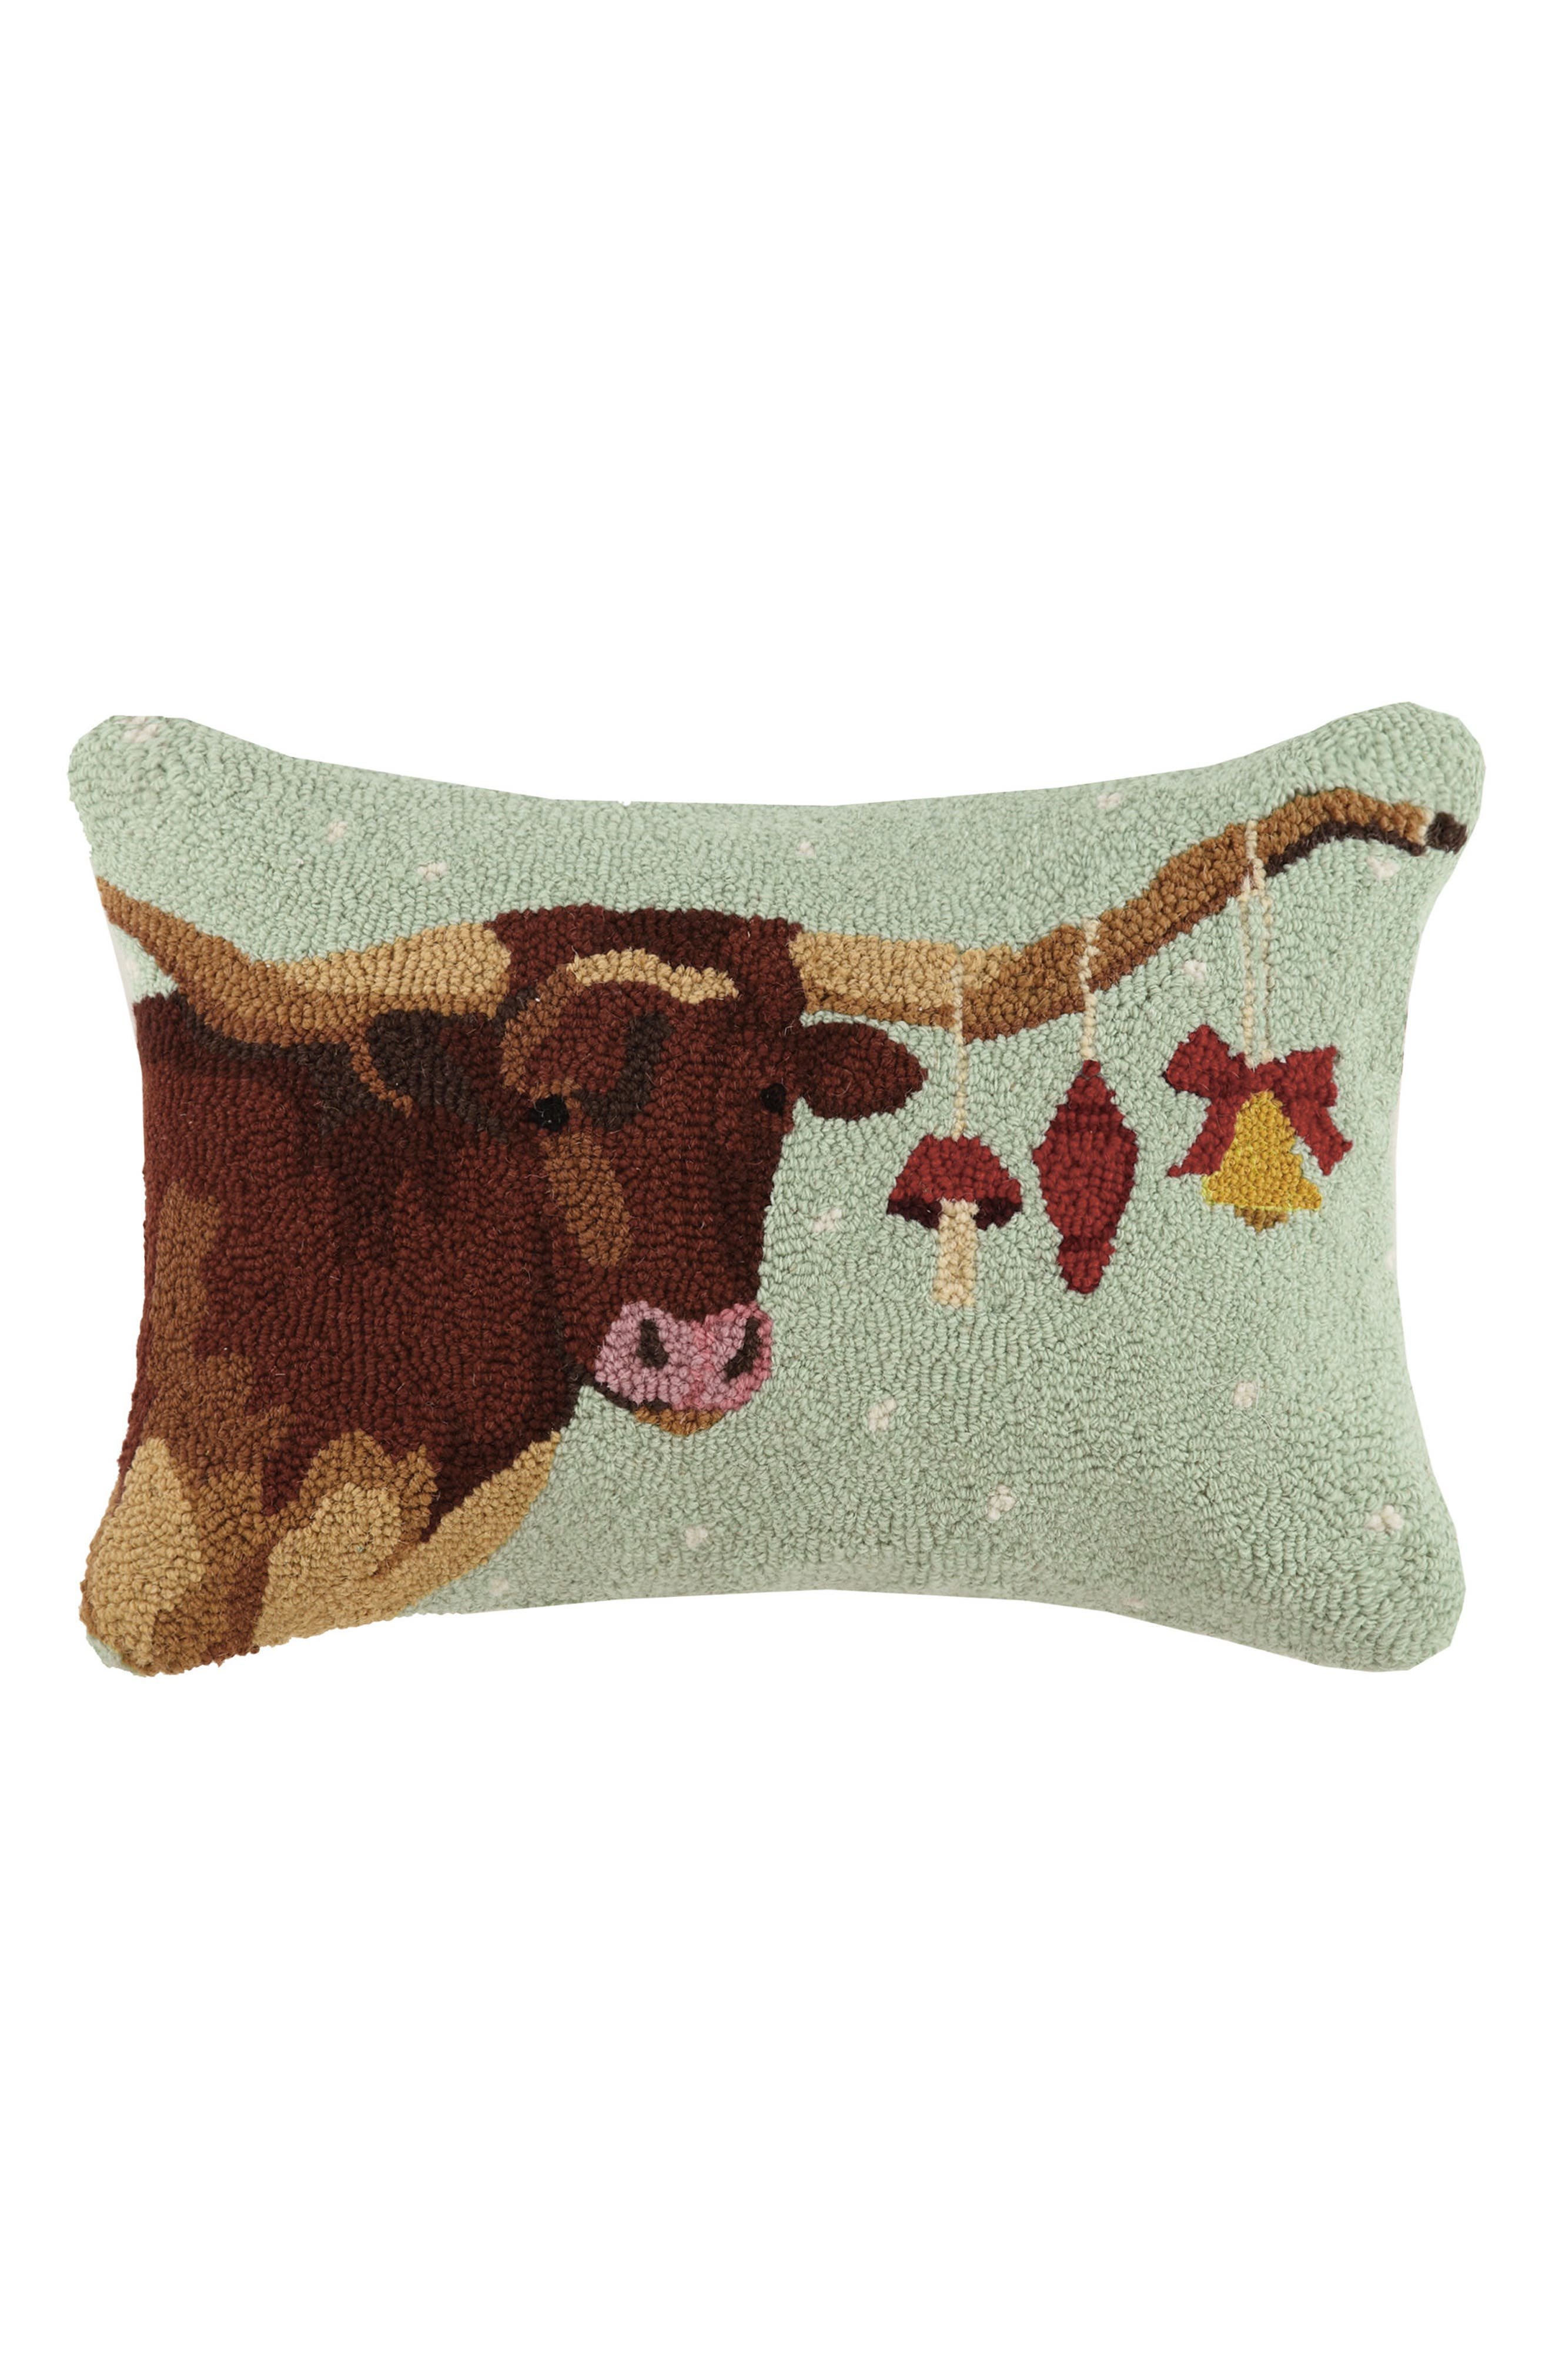 Longhorn with Ornaments Hooked Accent Pillow,                             Main thumbnail 1, color,